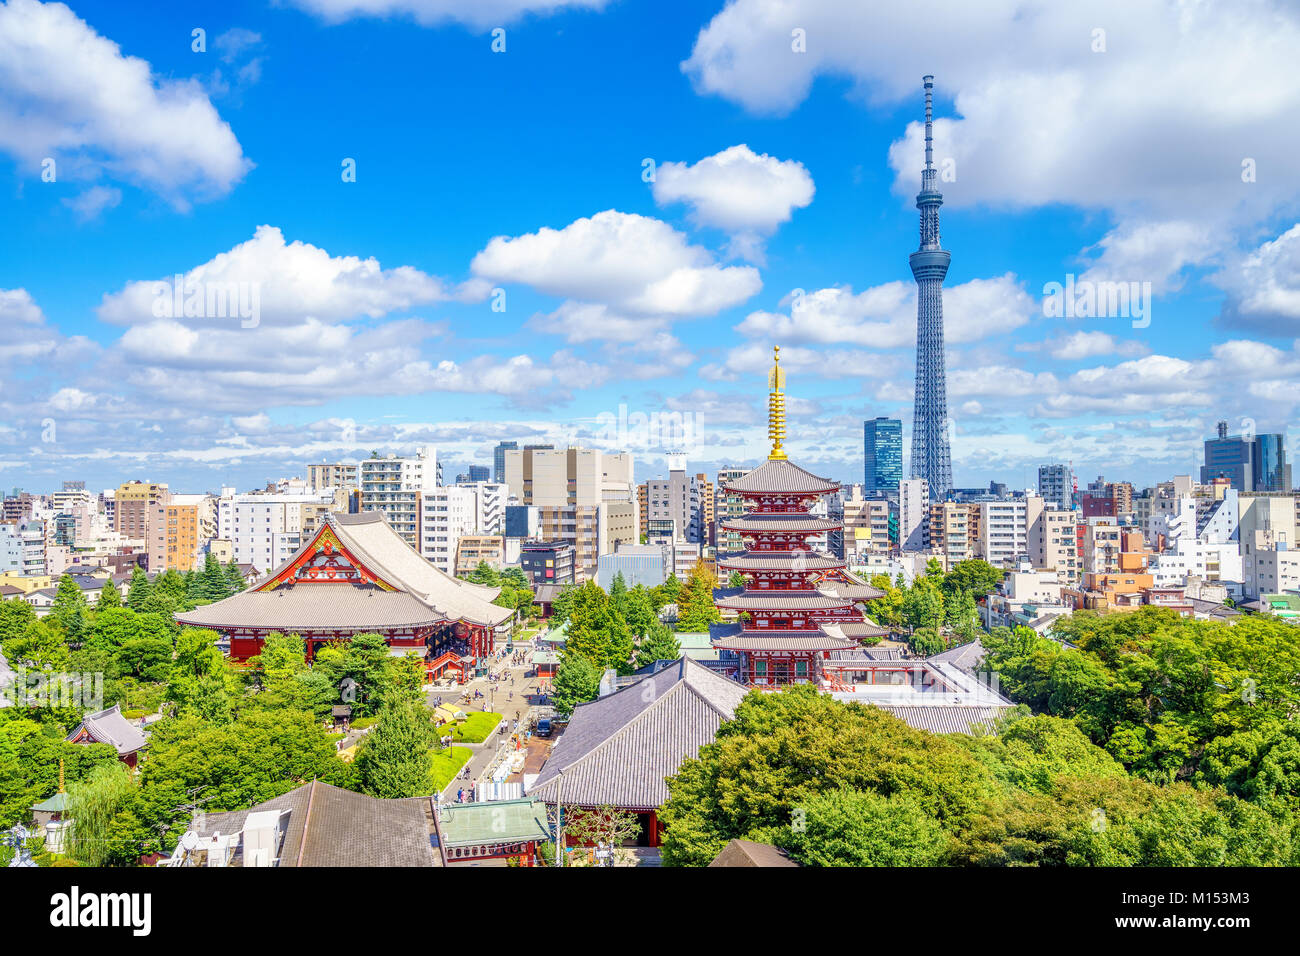 Aerial view of tokyo city with senso temple - Stock Image